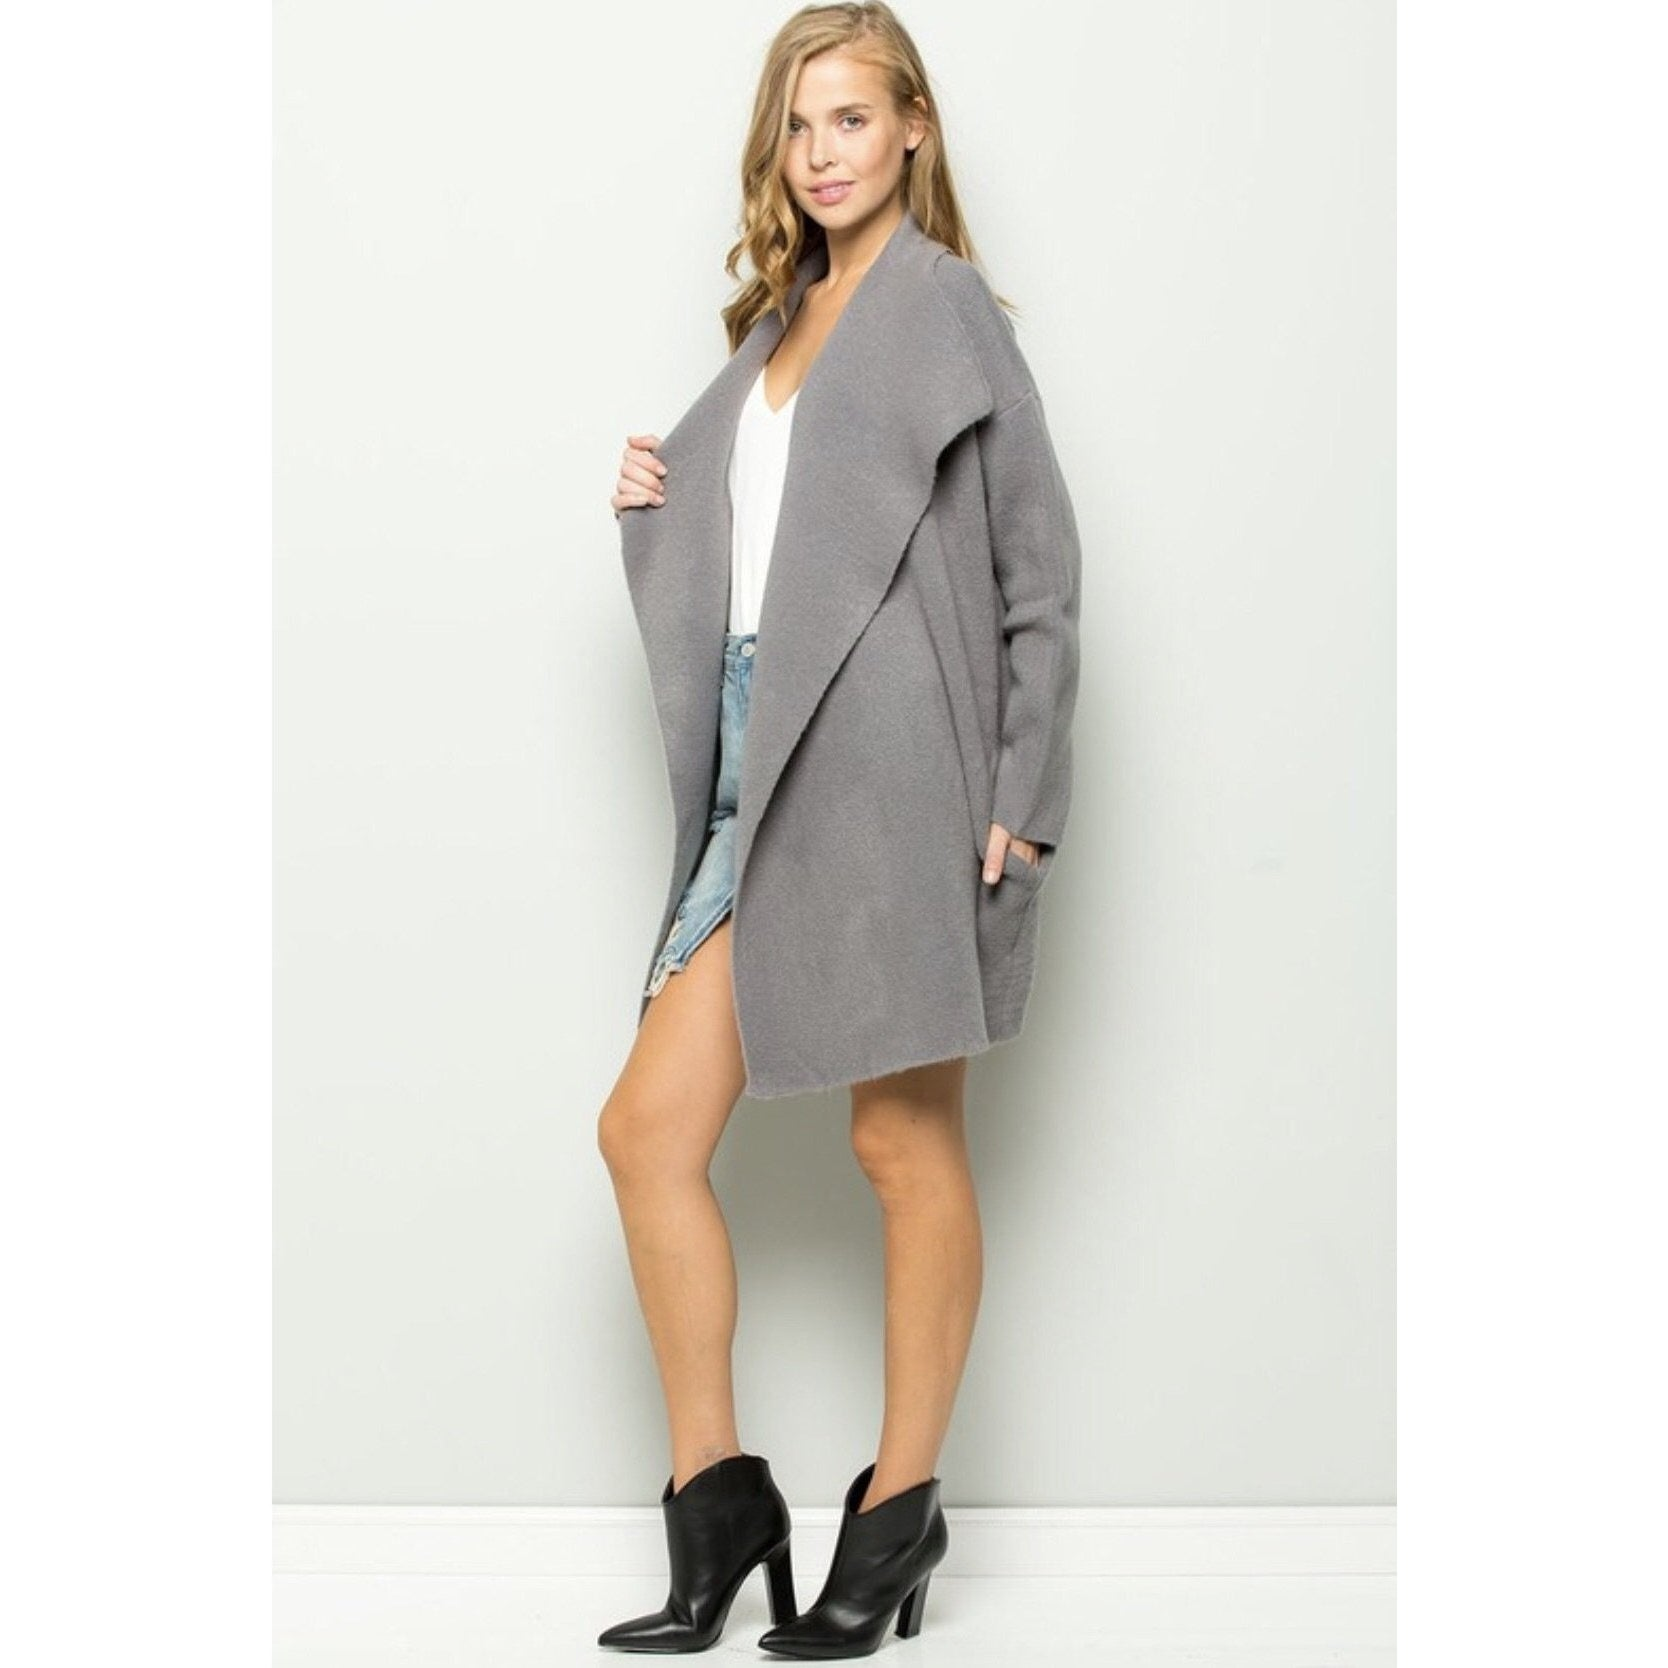 Grayscale Open Cardigan